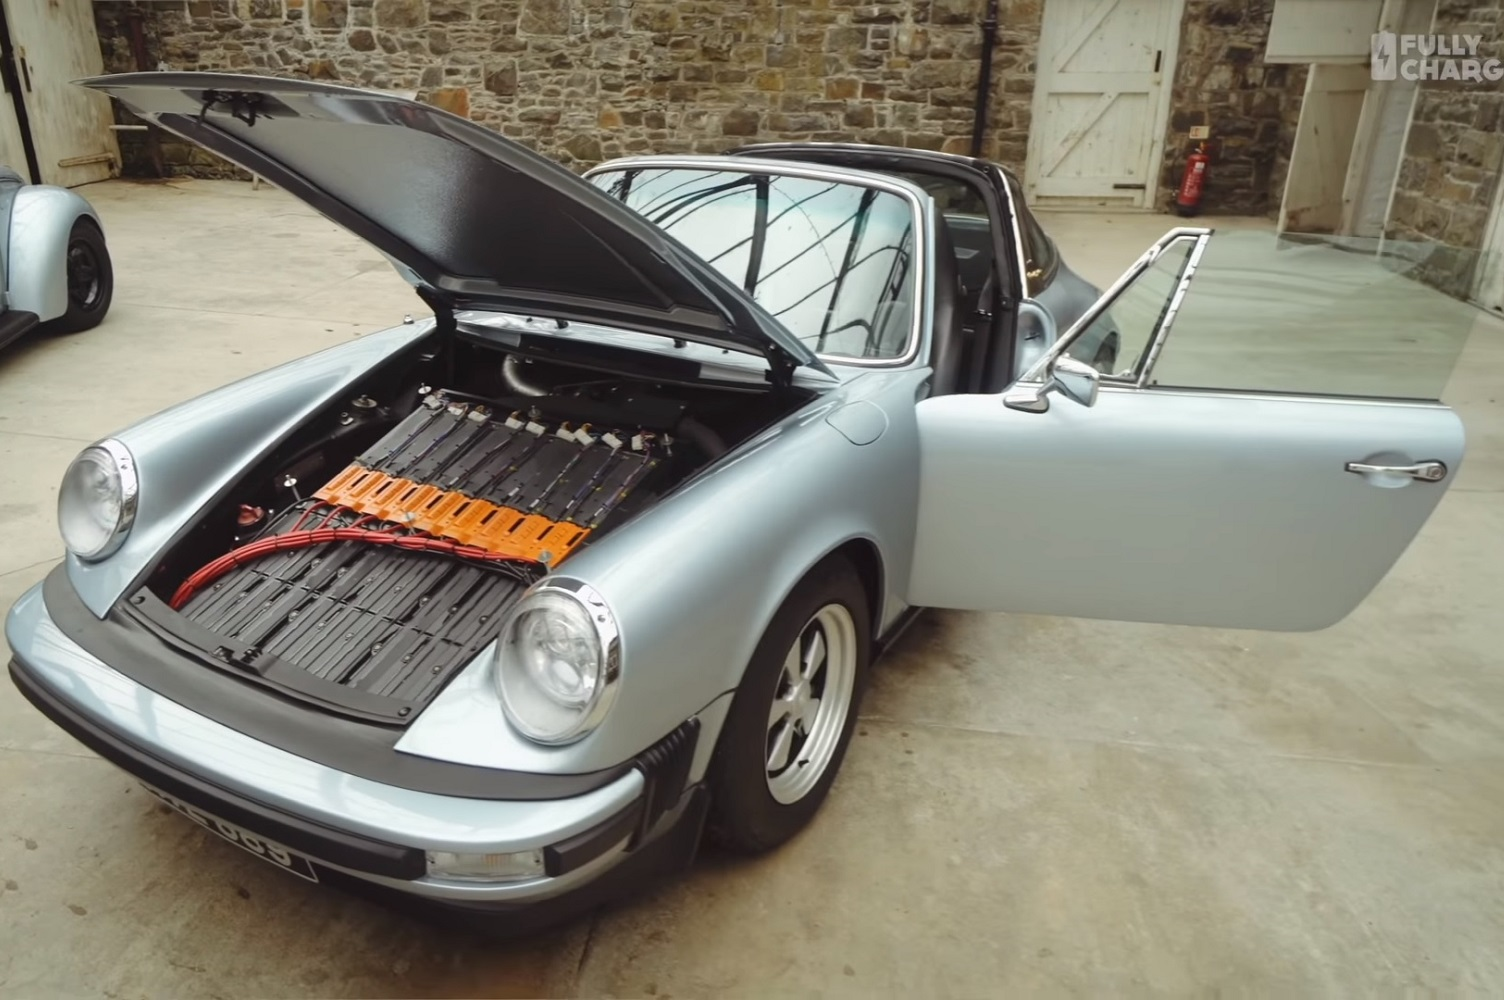 A Tesla Battery Pack Mutes This Classic Porsche 911's Flat